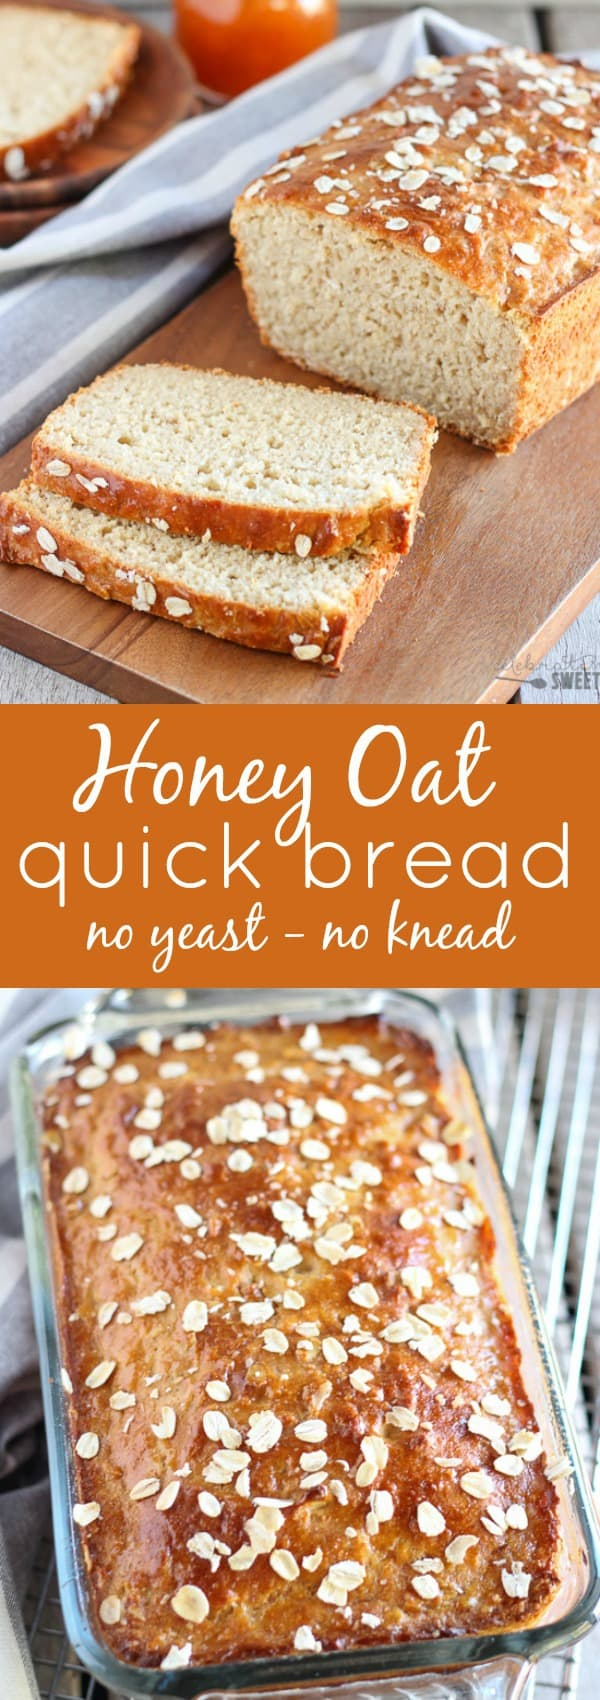 Yeast Free Bread - Honey Oat Quick Bread Recipe